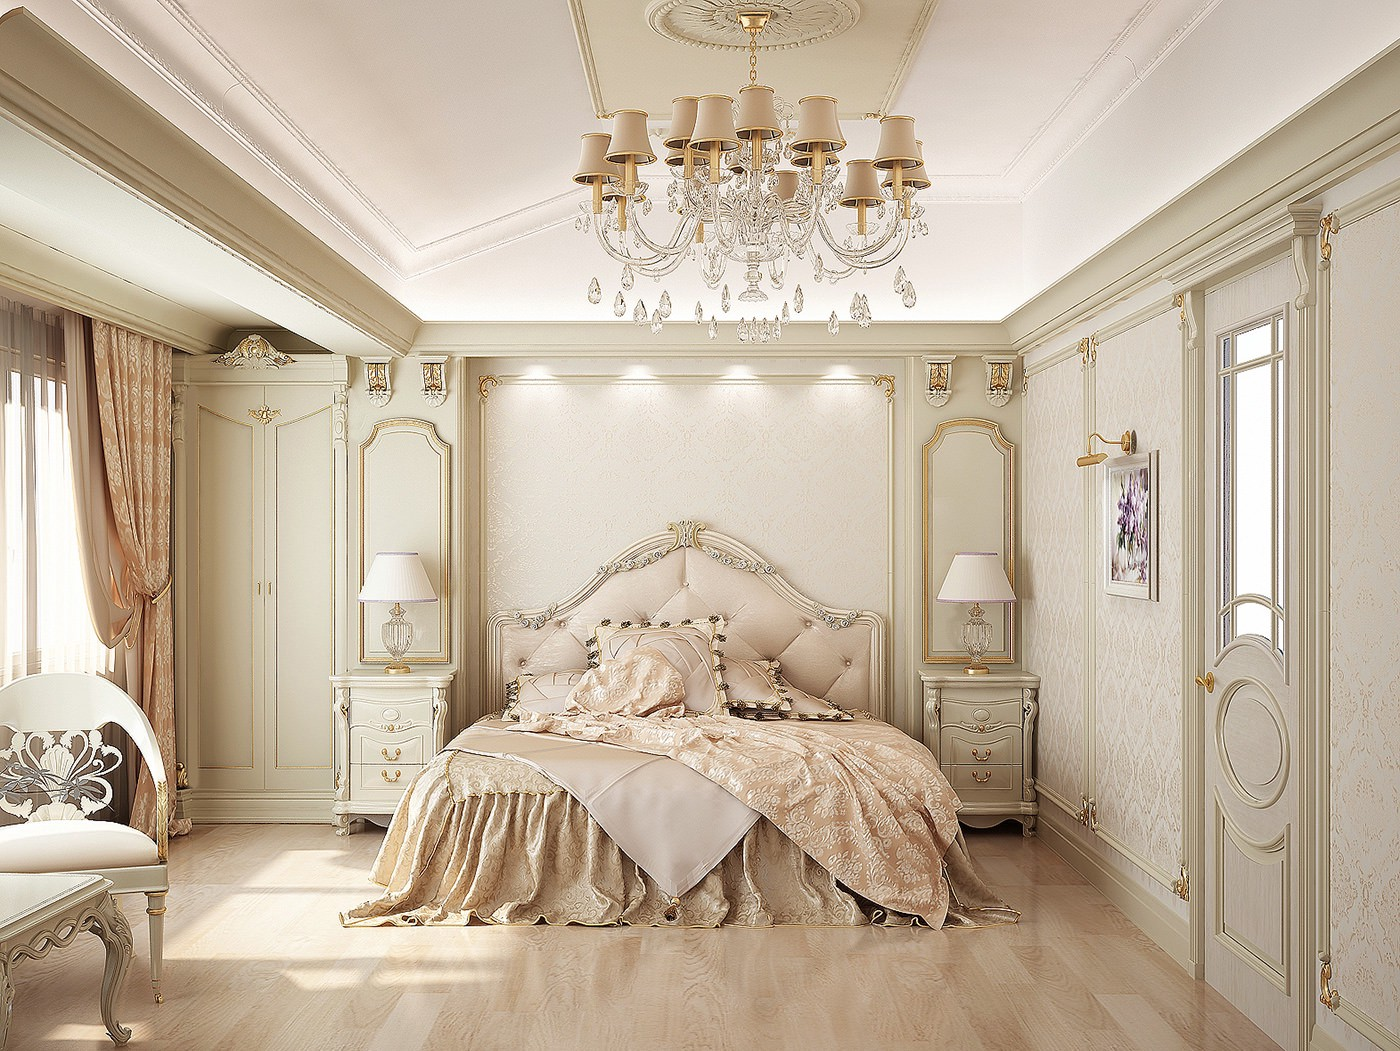 Classy & Elegant Traditional Bedroom Design – Dior Furniture NYC ...